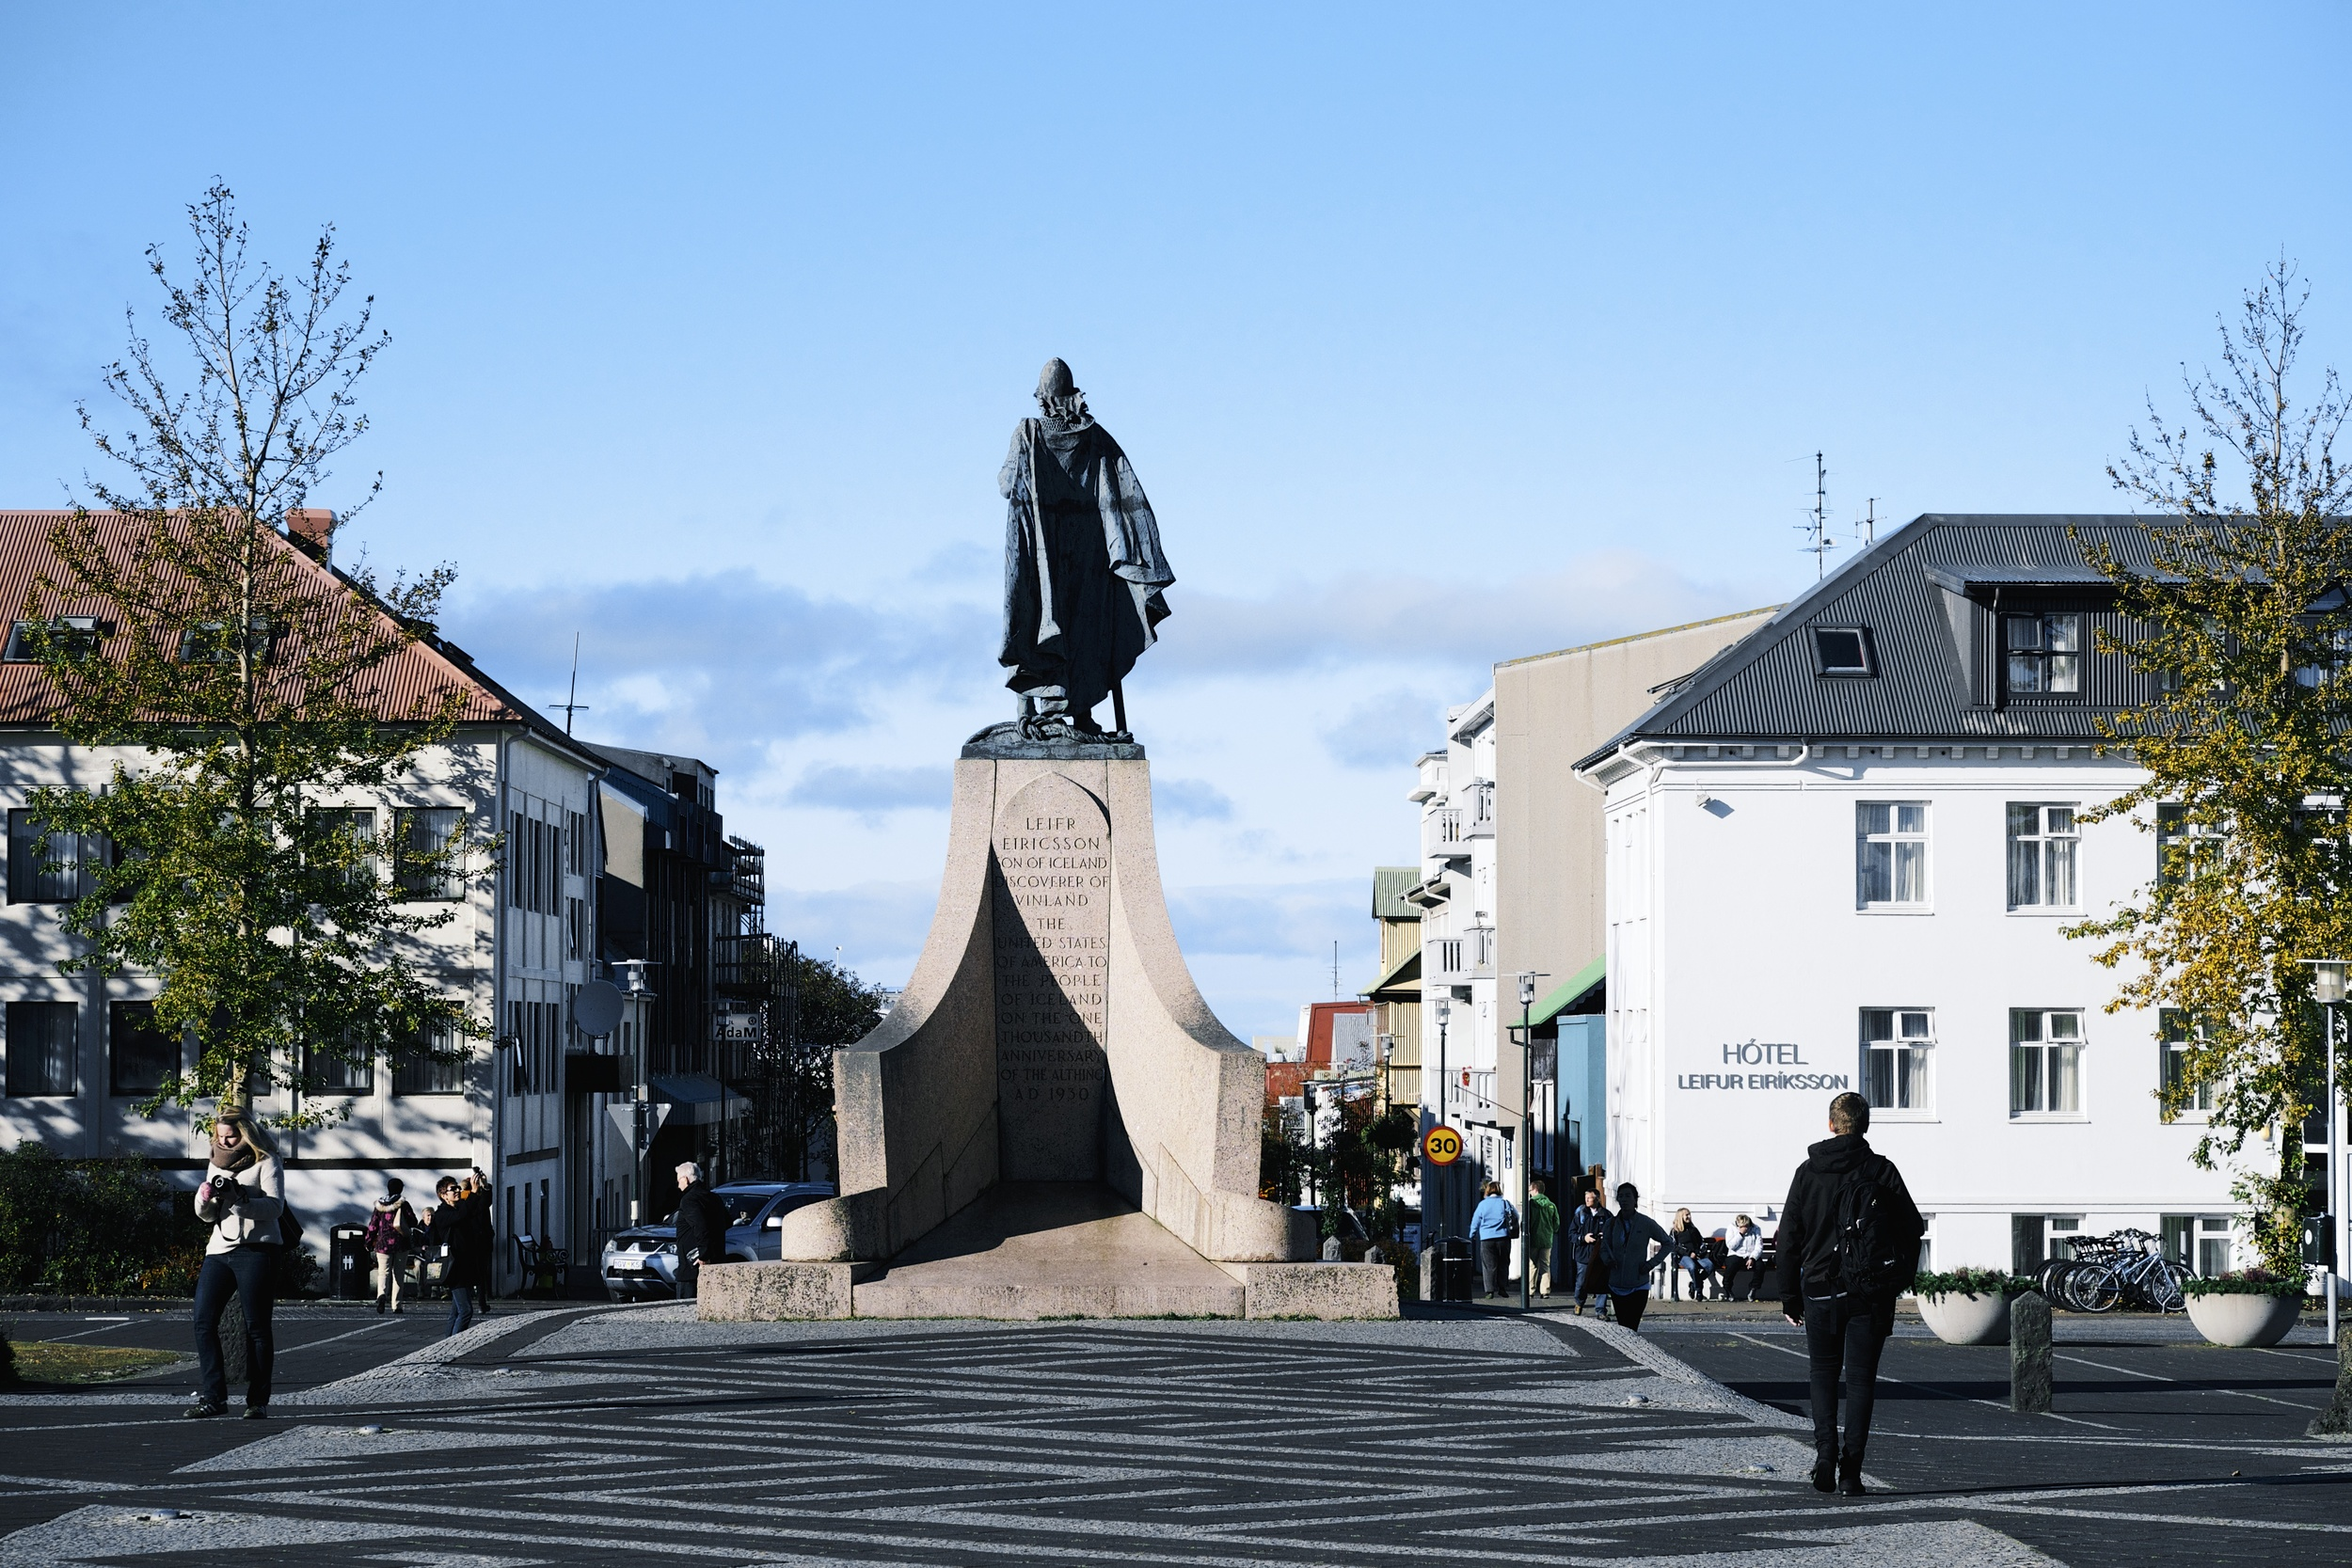 """""""LEIFR EIRICSSON SON OF ICELAND, DISCOVERER OF VINLAND. THE UNITED STATES OF AMERICA TO THE PEOPLE OF ICELAND ON THE ONE THOUSANDTH ANNIVERSARY OF THE ALTHING. 1930"""""""